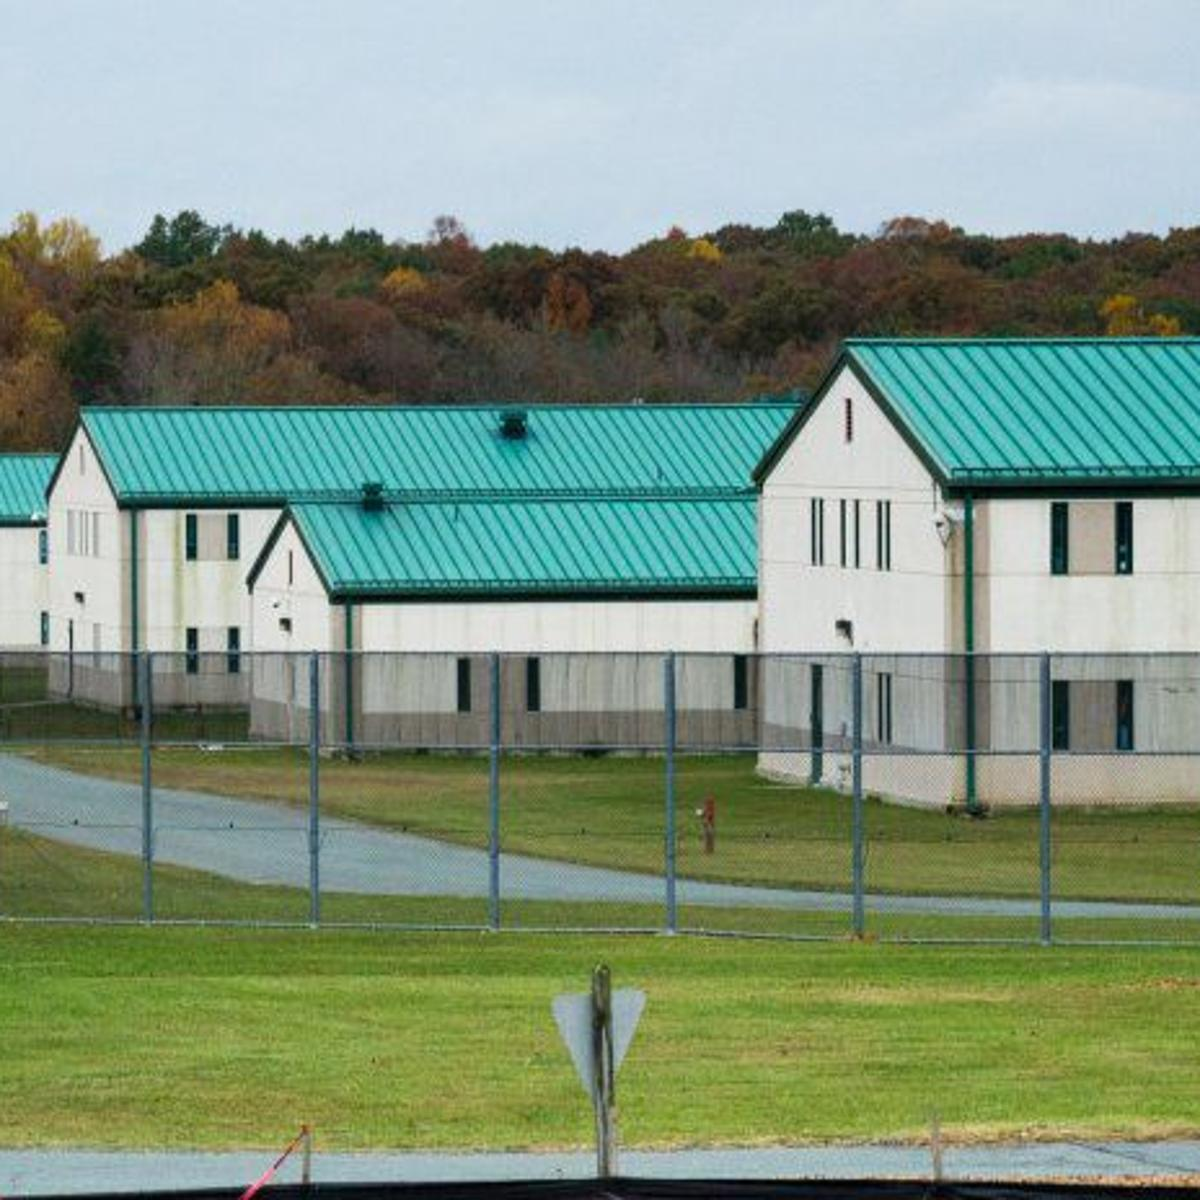 Virginia prison system budget sees